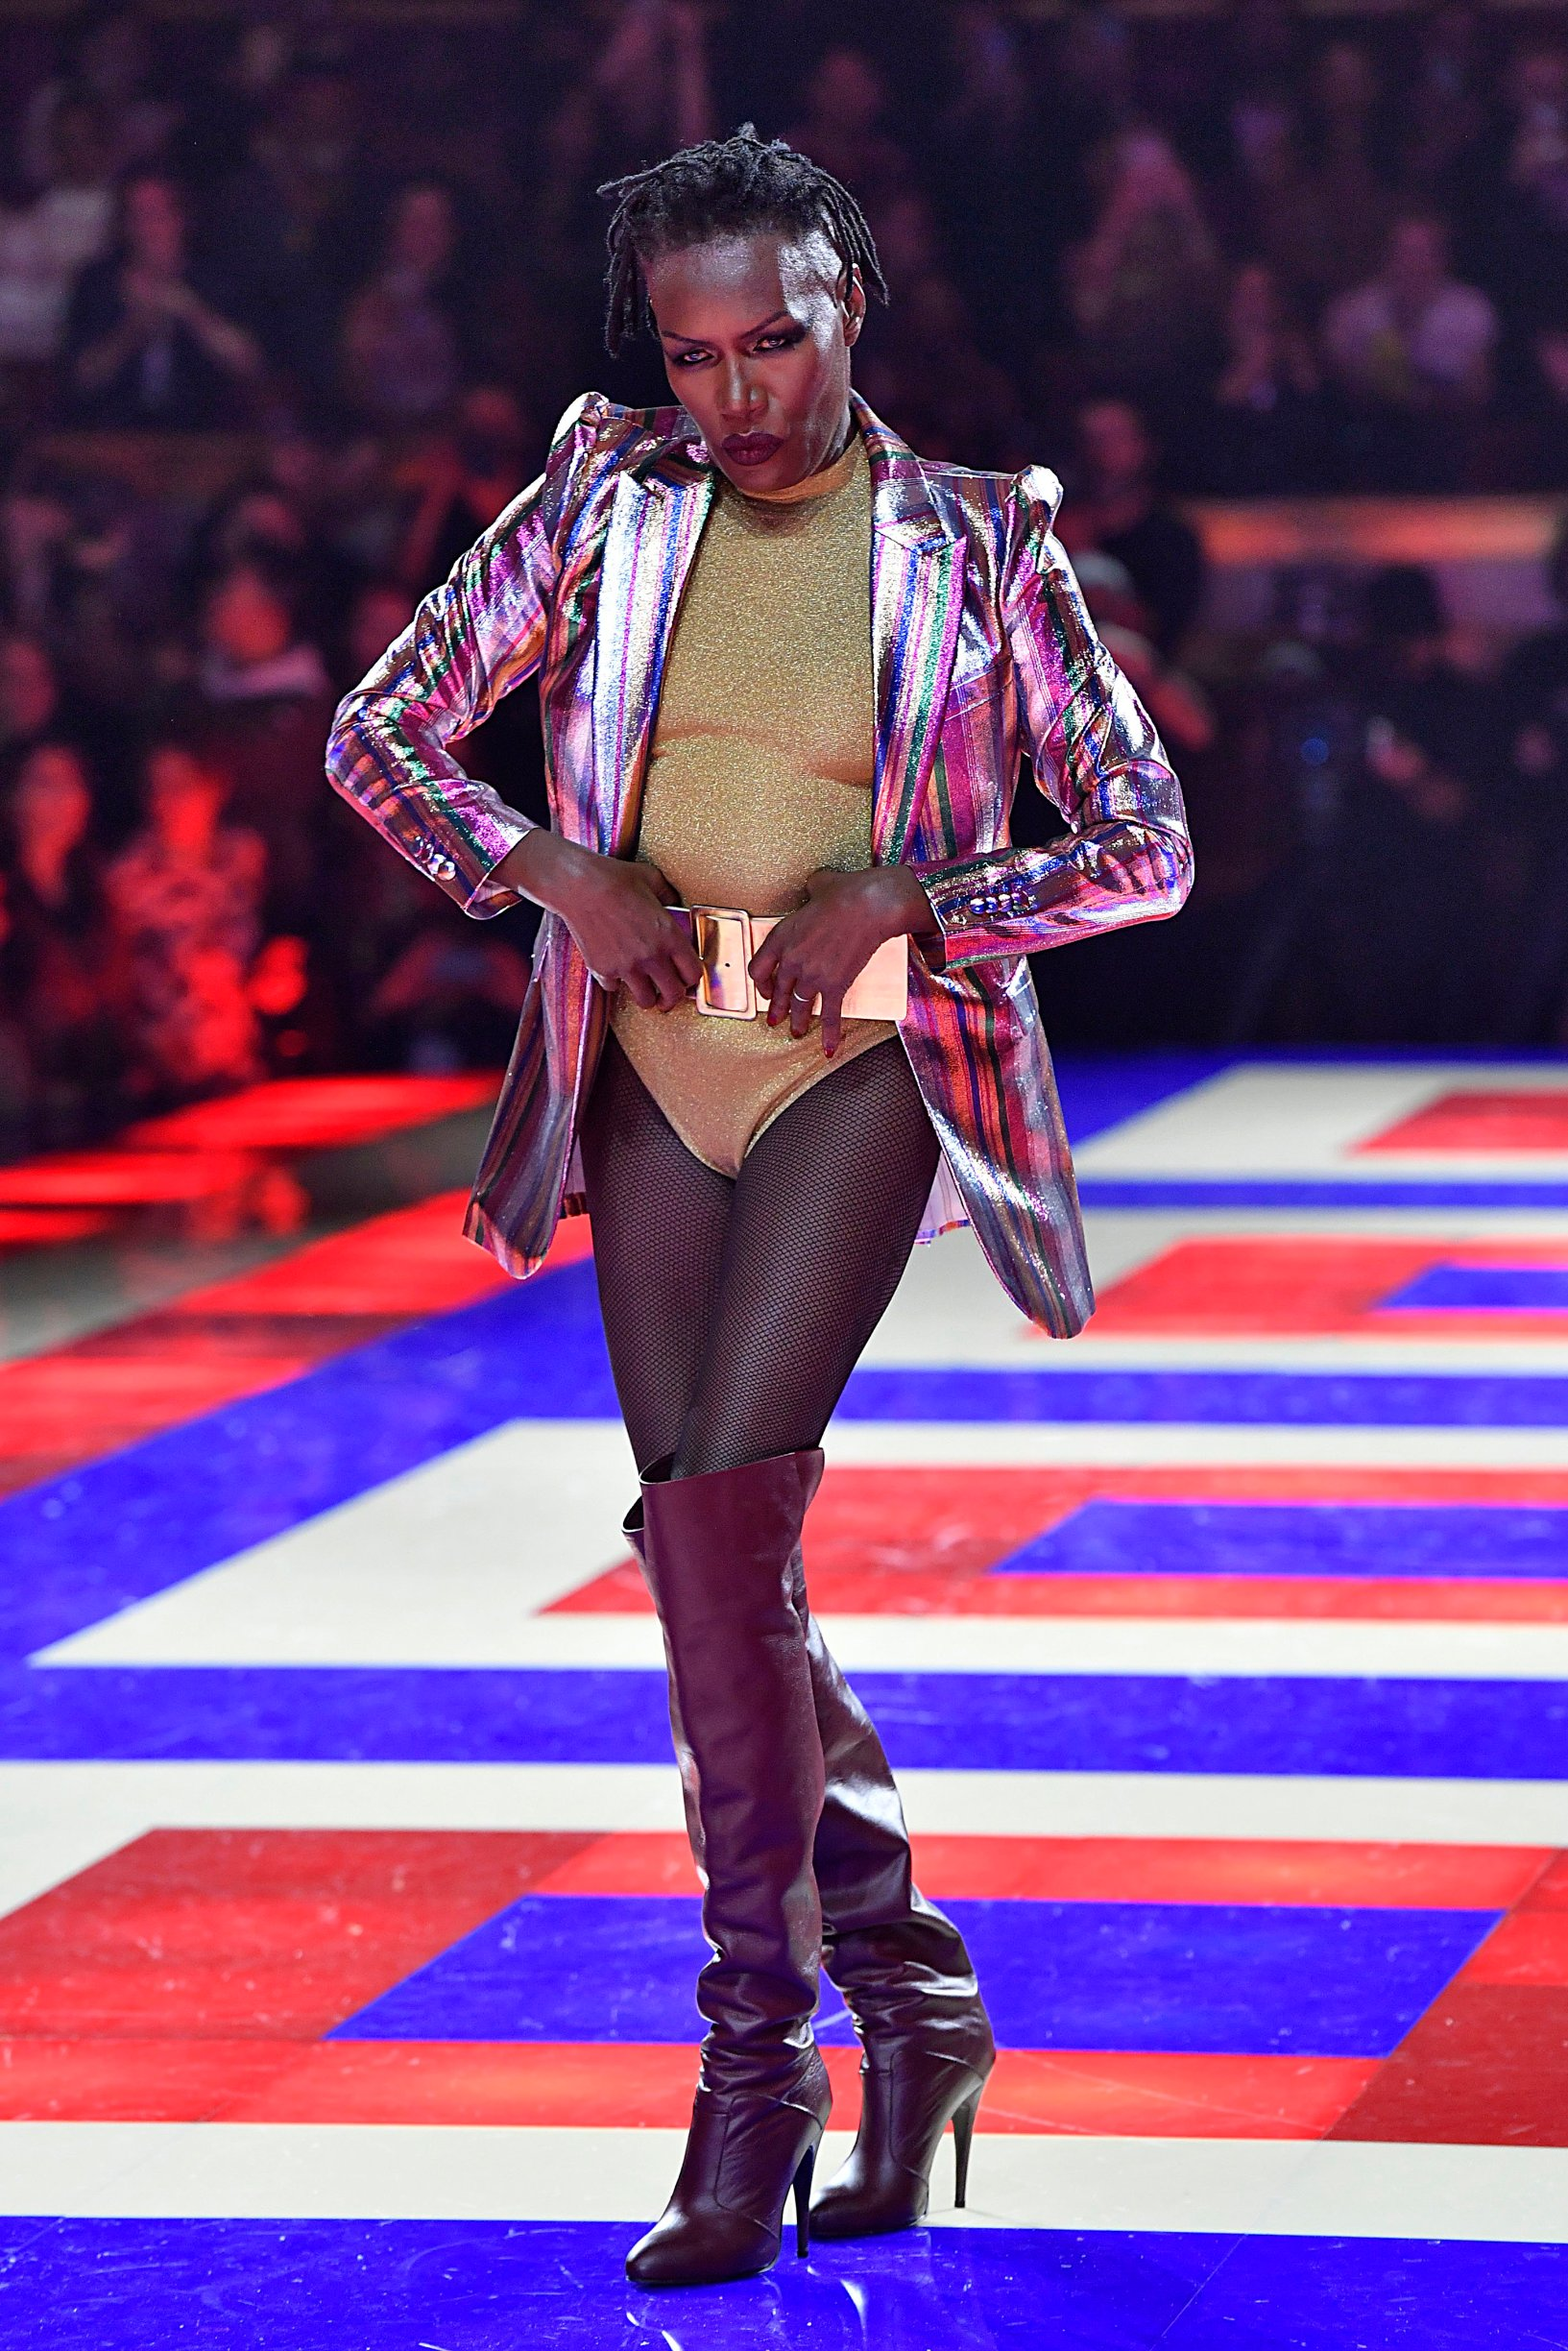 Grace Jones walks on the runway during the Tommy Hilfiger Ready To Wear Fashion Show during Paris Fashion Week Spring 2019 held in Paris, France on March 2, 2019., Image: 416997876, License: Rights-managed, Restrictions: *** World Rights ***, Model Release: no, Credit line: Profimedia, SIPA USA